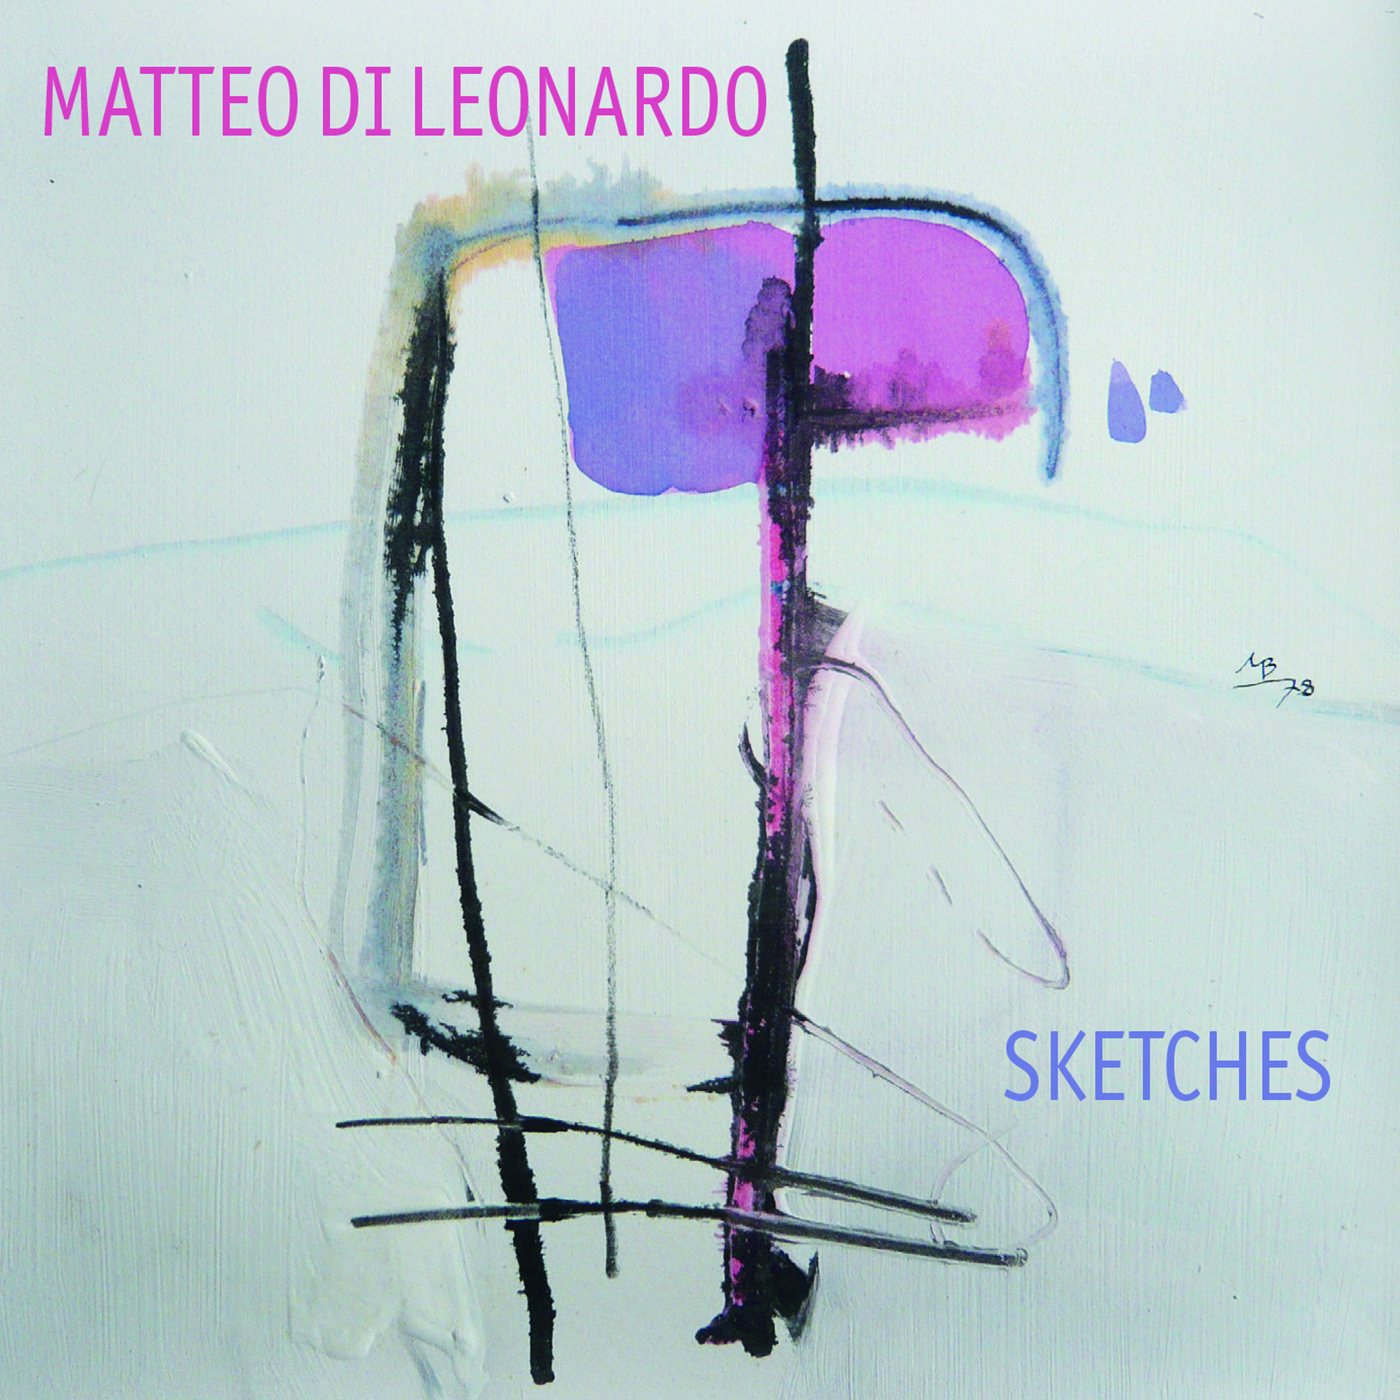 Sketches is the debut album of guitar player matteo di leonardo he became revelation of contemporary jazz guitar of 2017 born in italy his musical